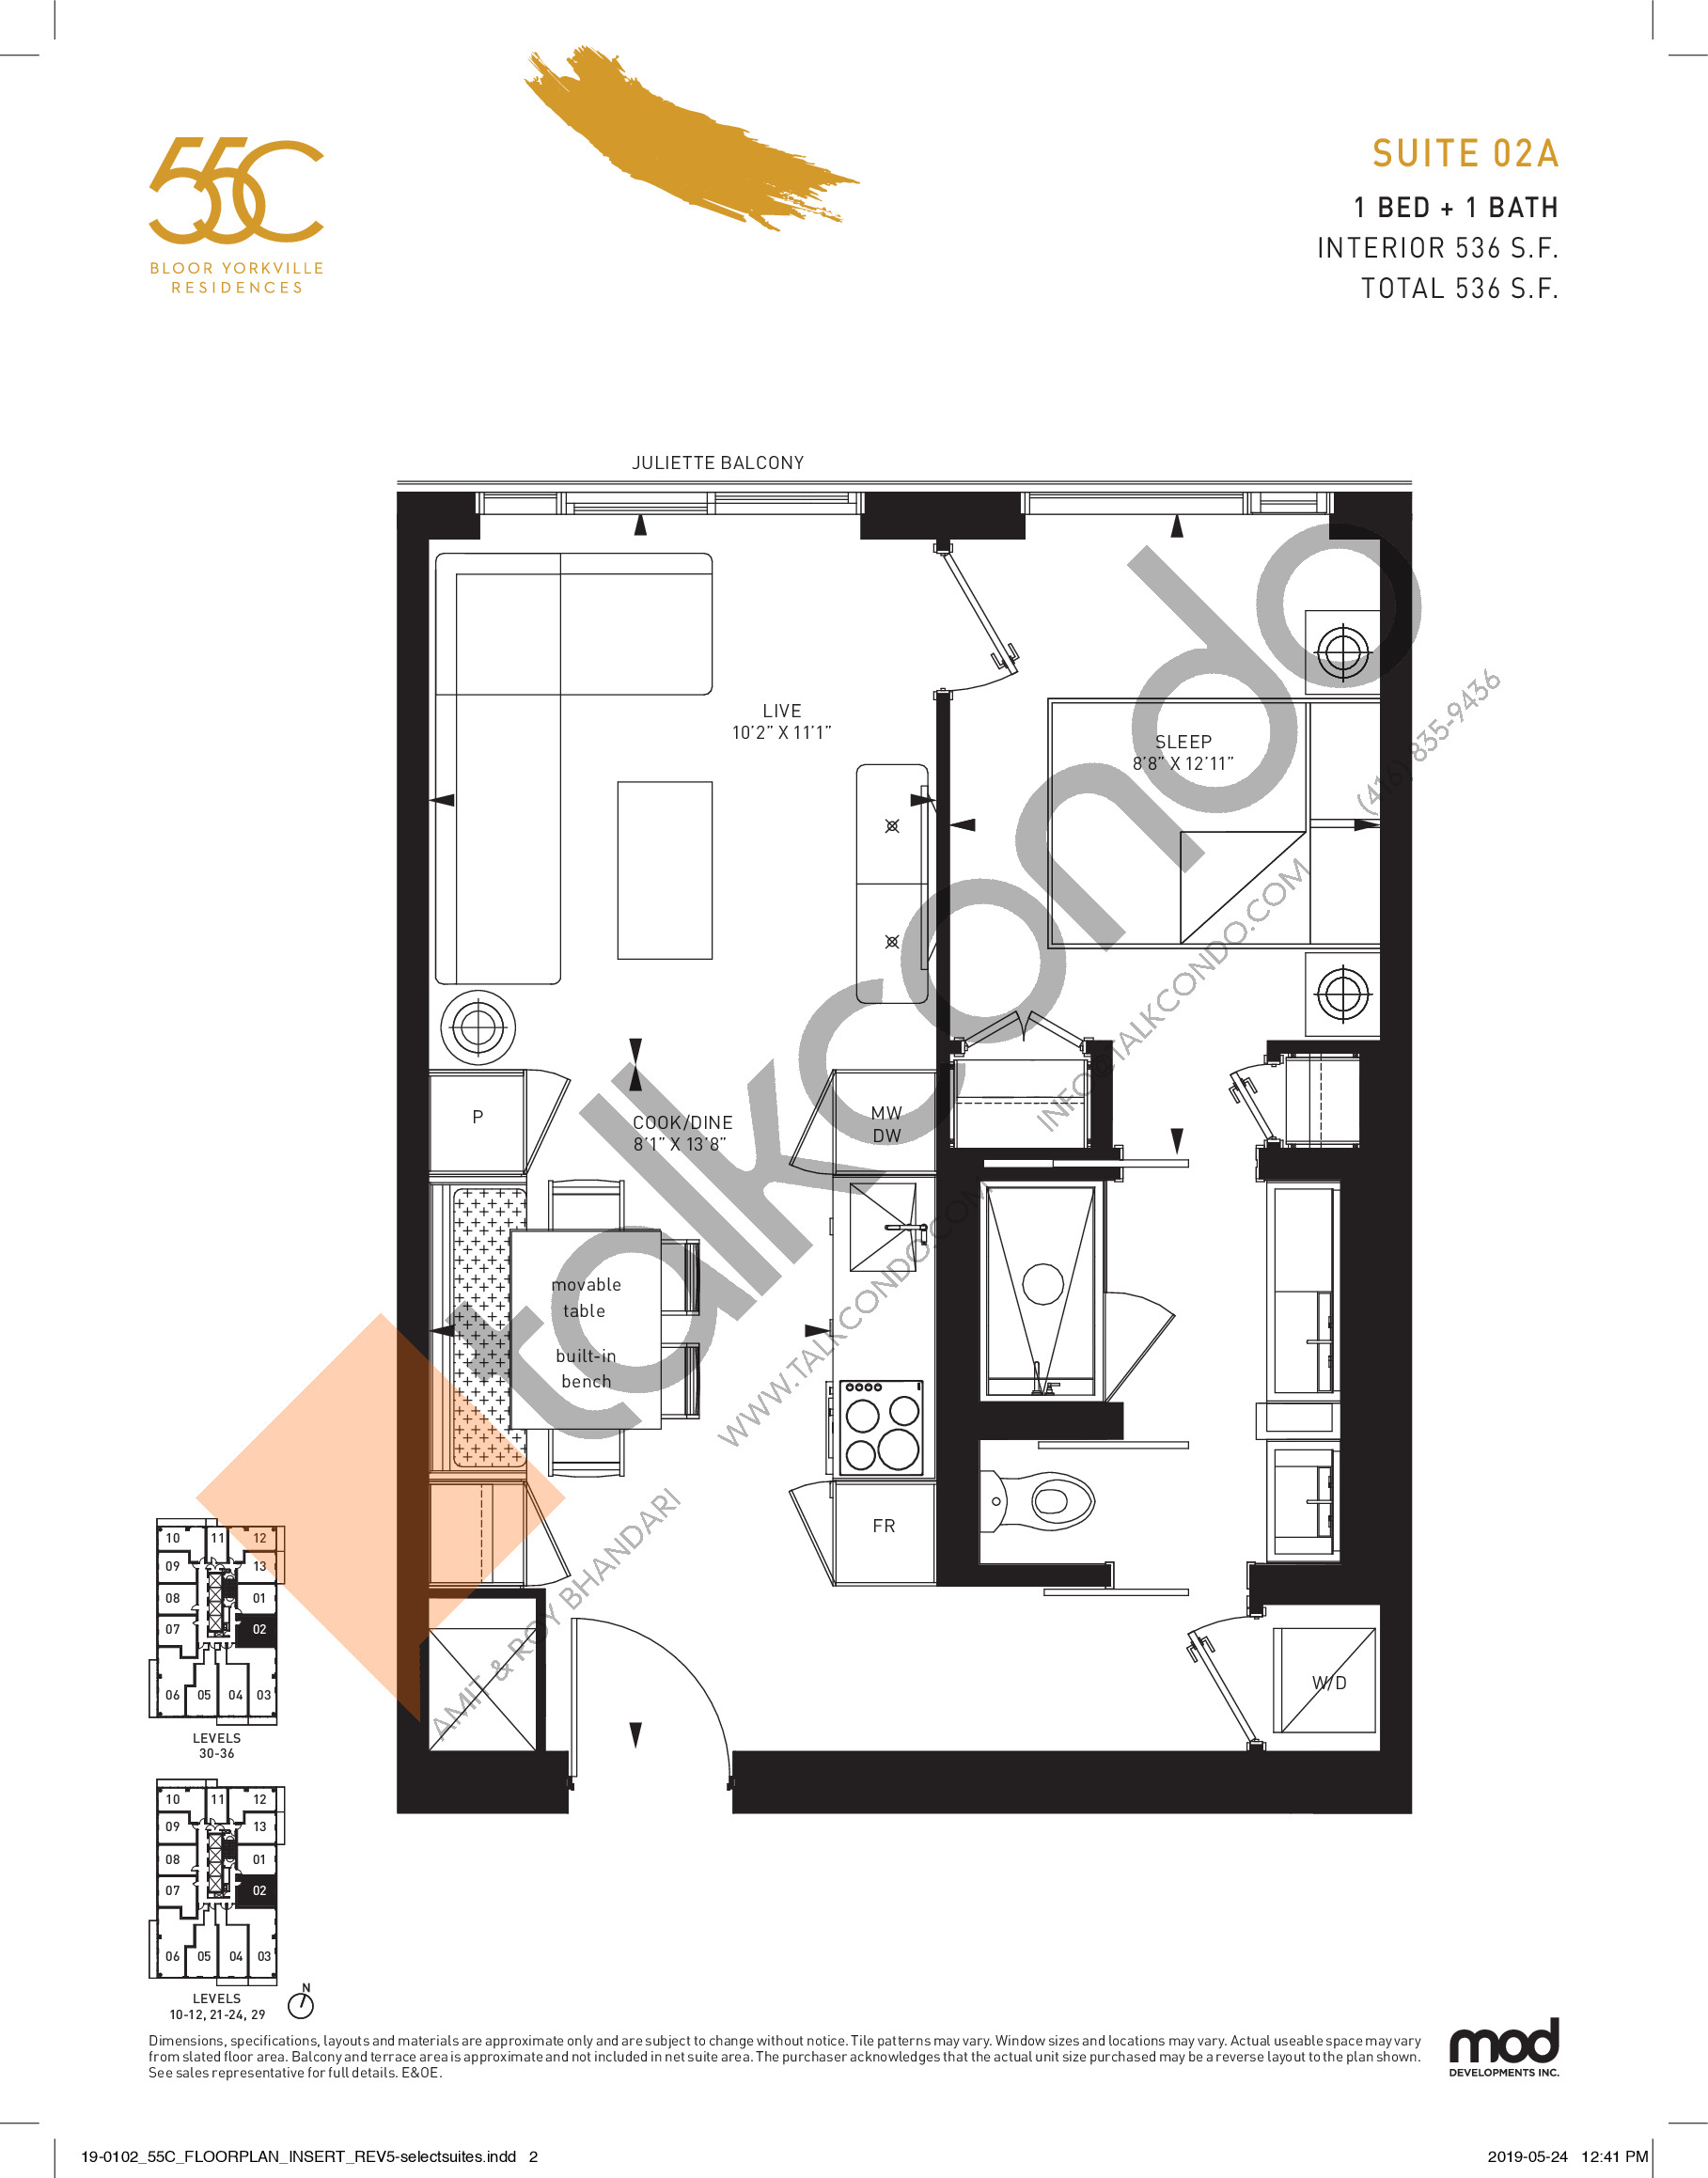 Suite 02A Floor Plan at 55C Condos - 536 sq.ft